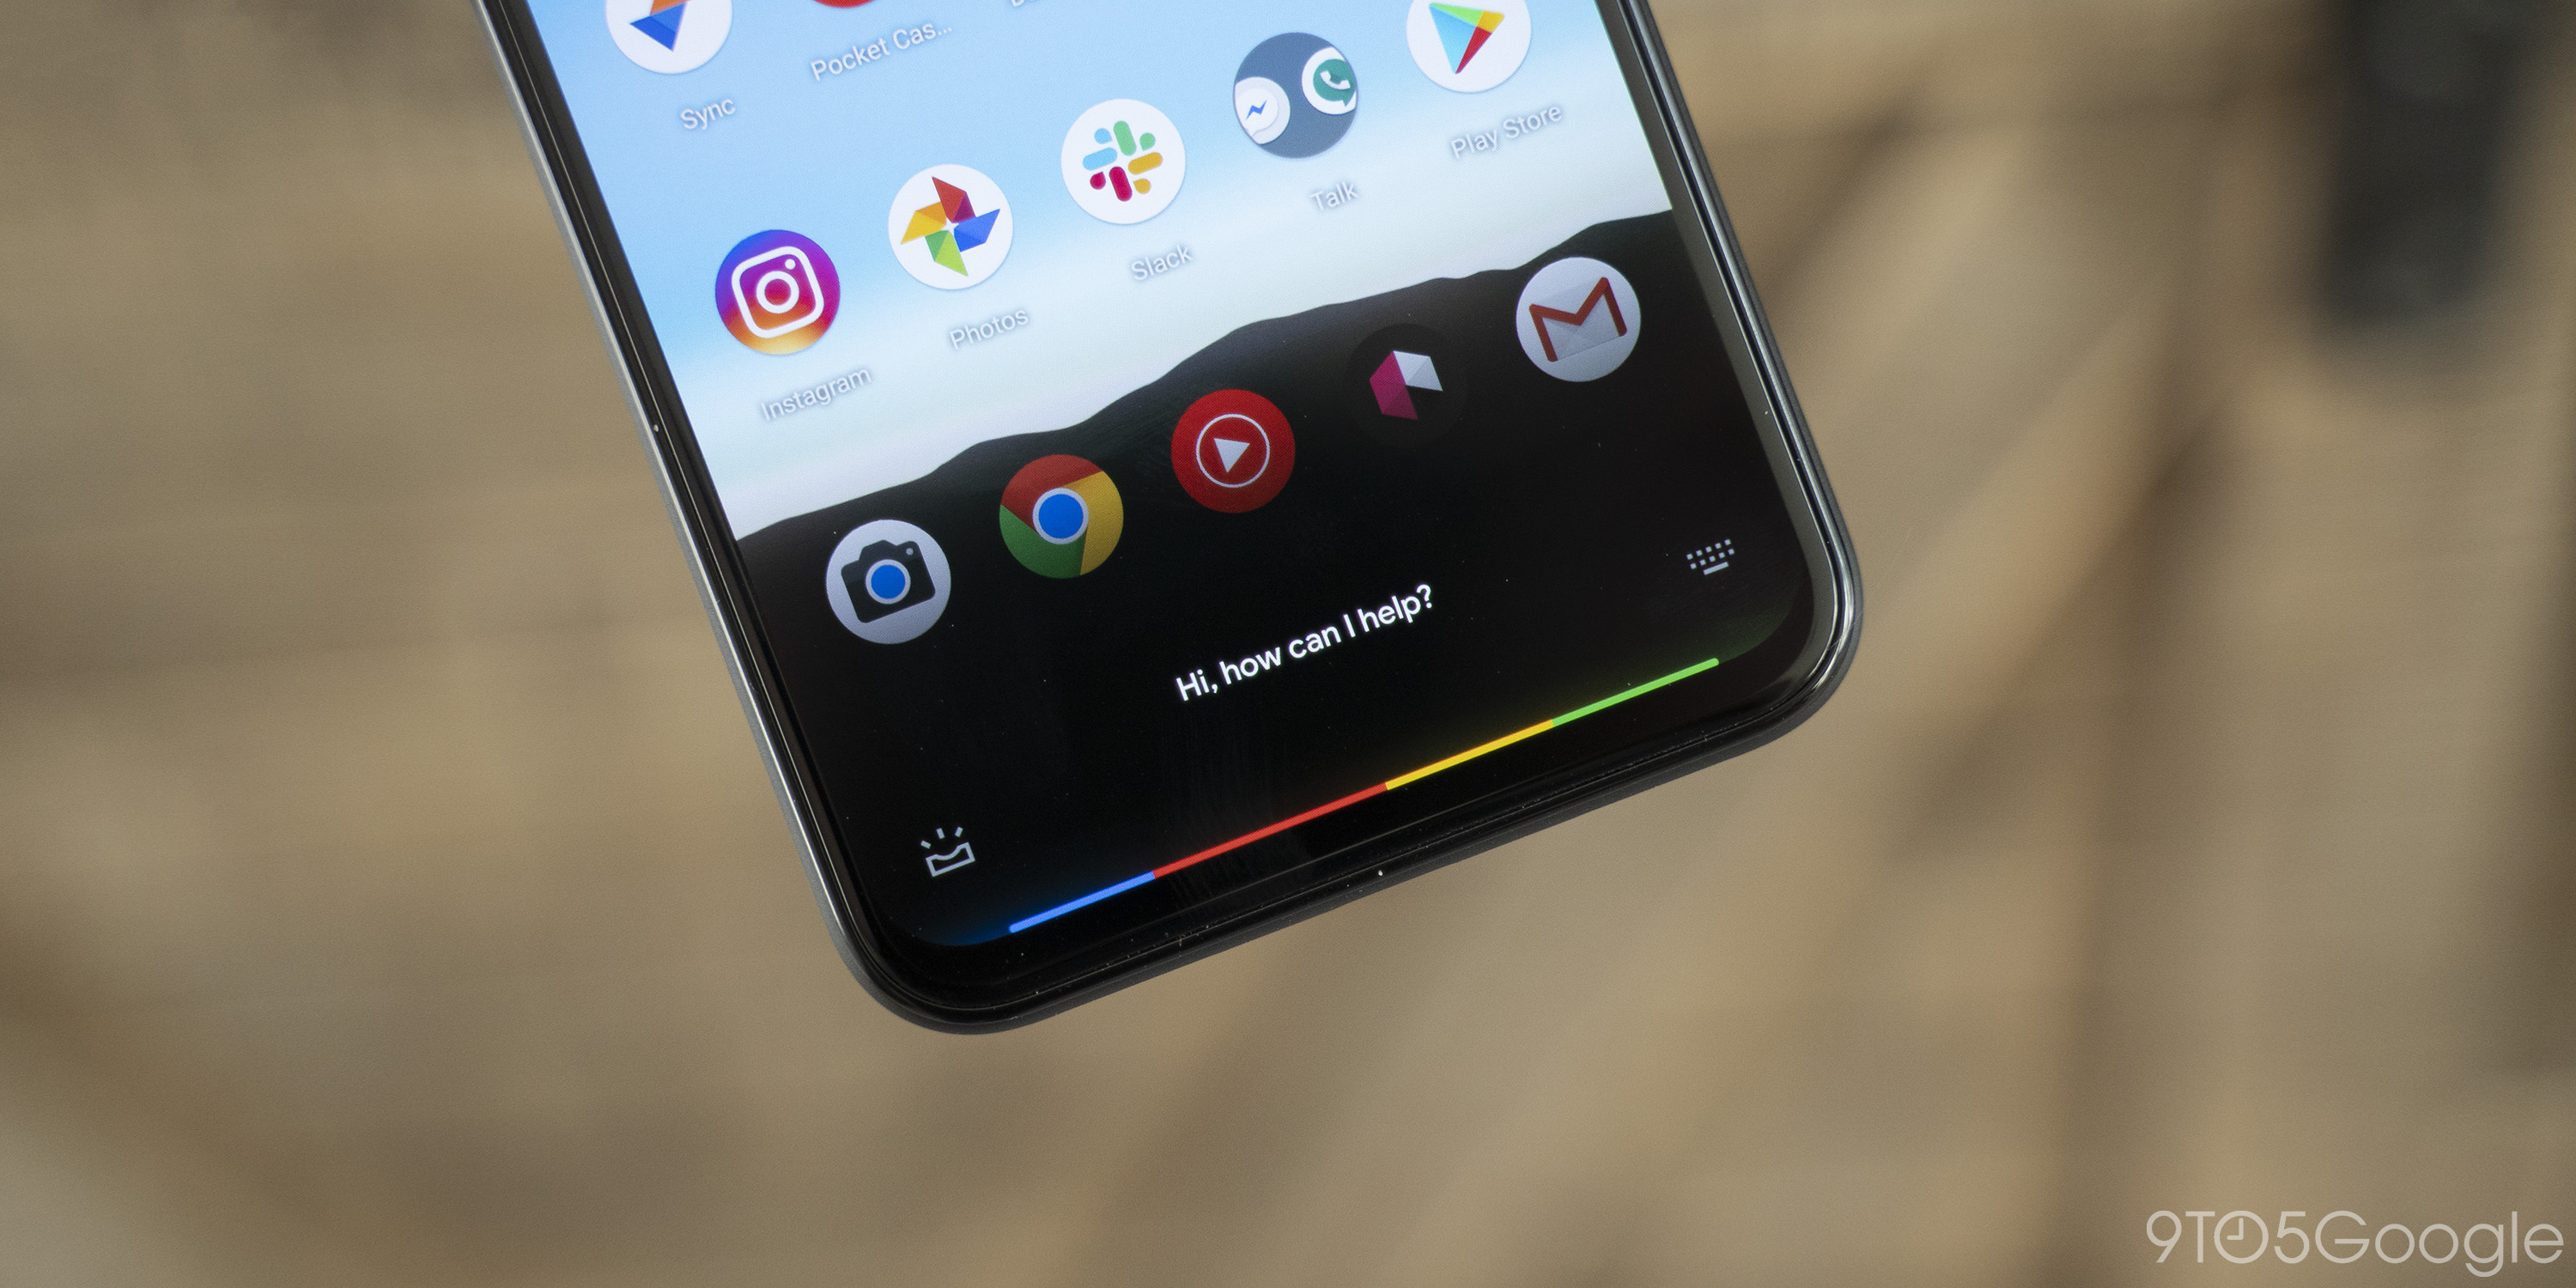 Review: Subtlety makes and breaks the Pixel 4's new Google Assistant